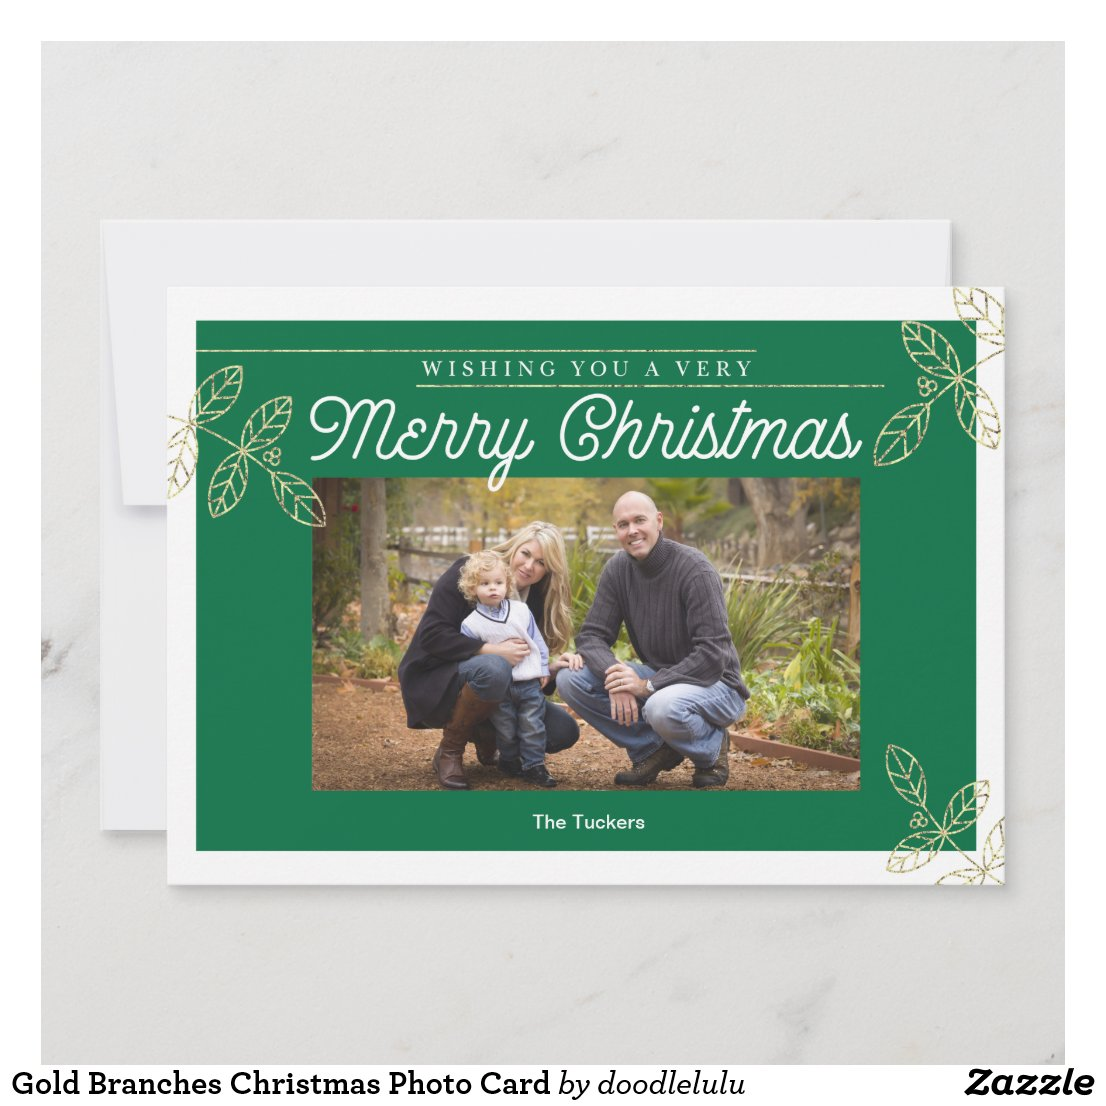 Gold Branches Christmas Photo Card